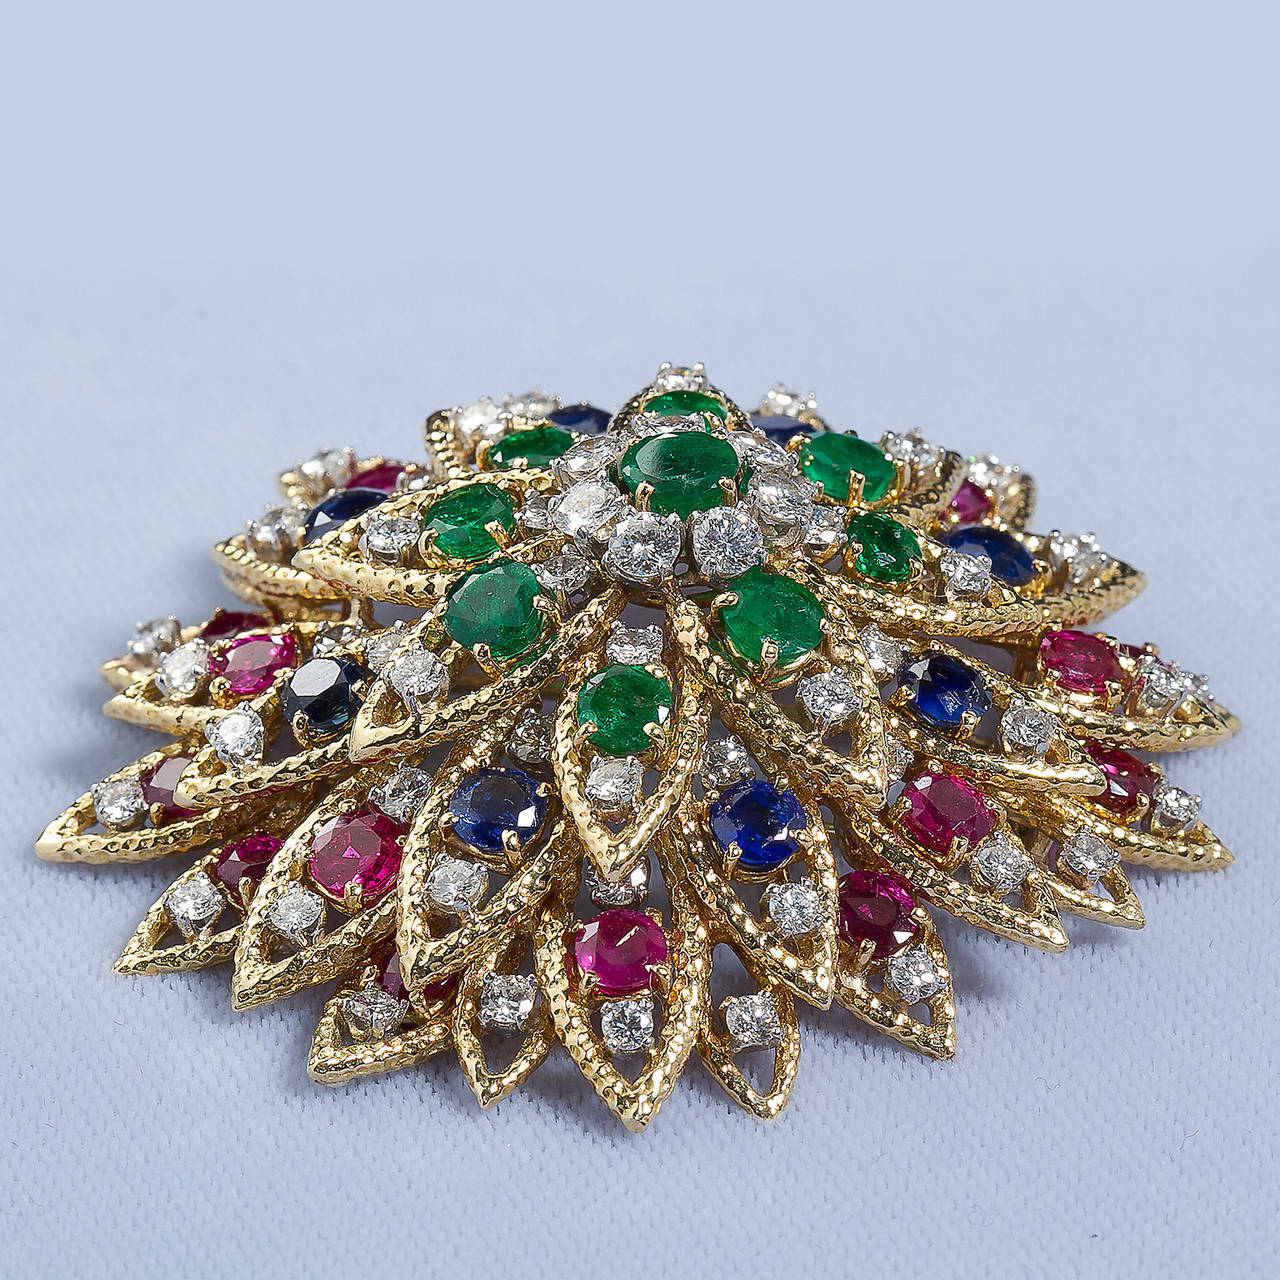 A diamond and multi-gem in 18k gold stylized elaborate brooch by David Webb. Contains round brilliant diamonds, sapphires, rubies and emeralds. Measures approx. 2-1/2 inches wide.  No. 6528